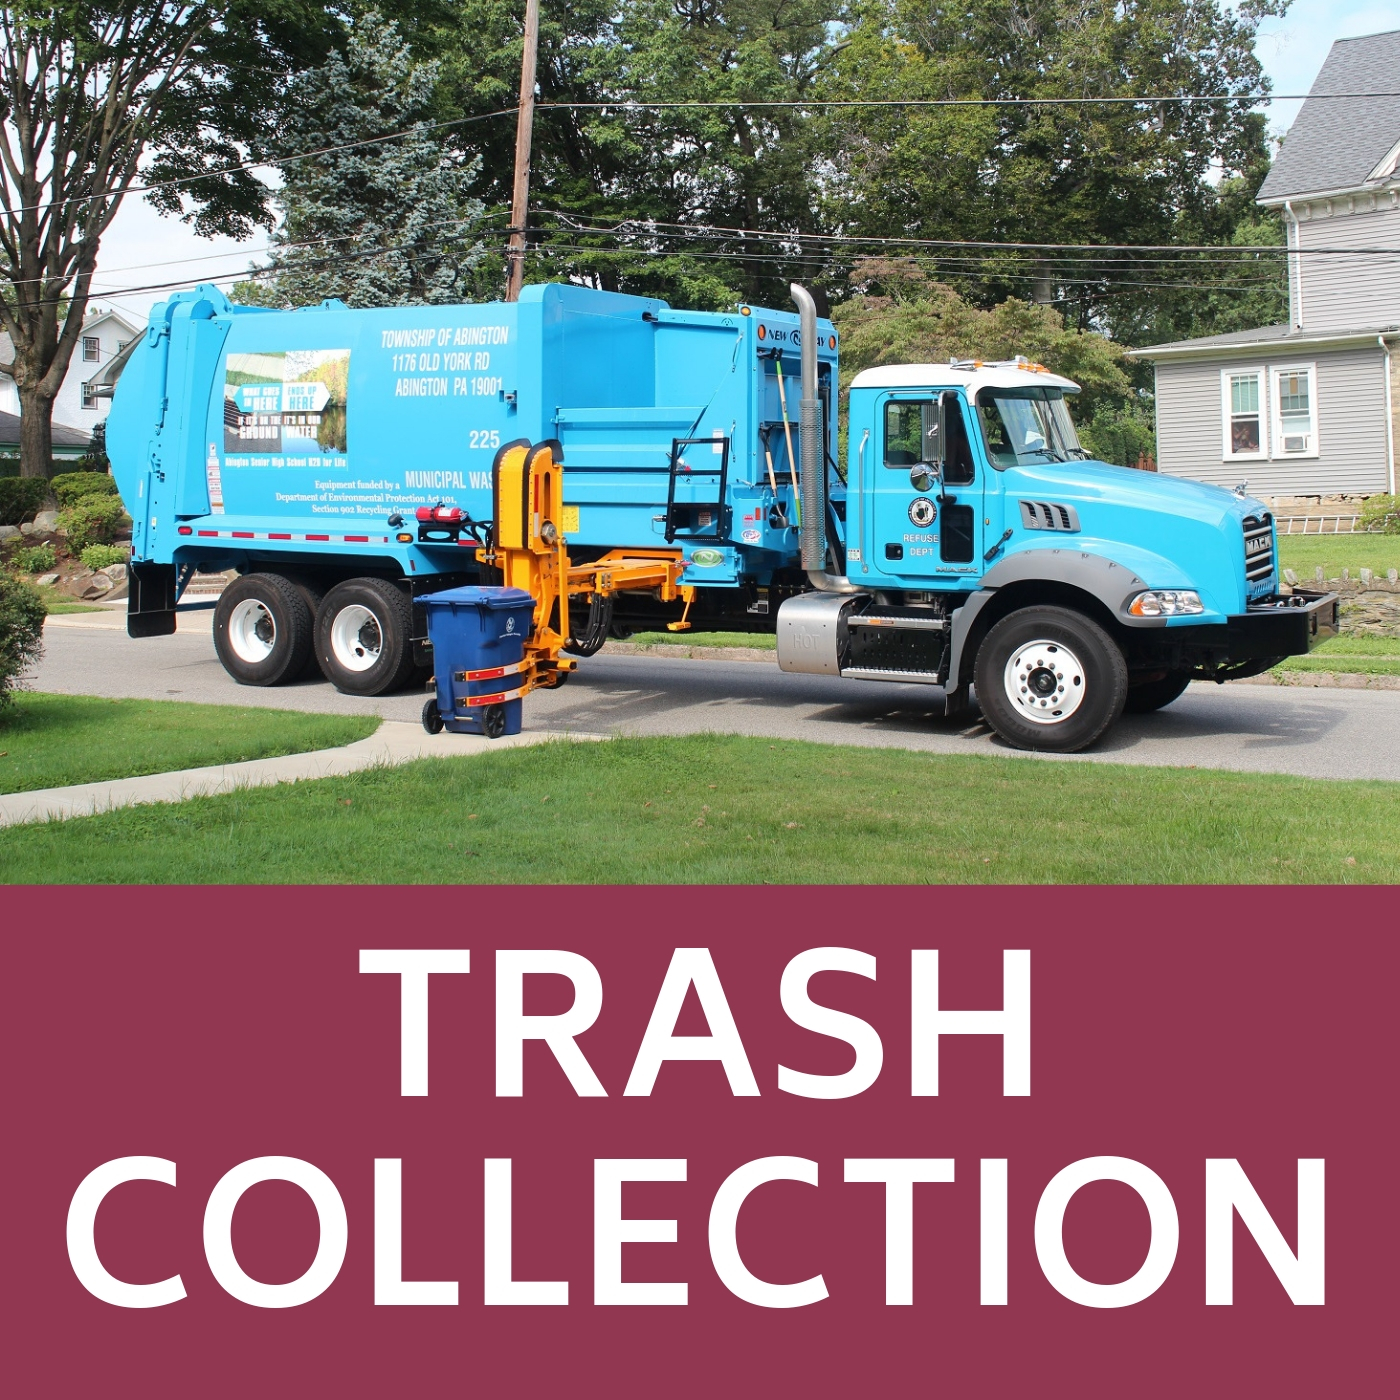 trash collection icon that links to trash collection webpage